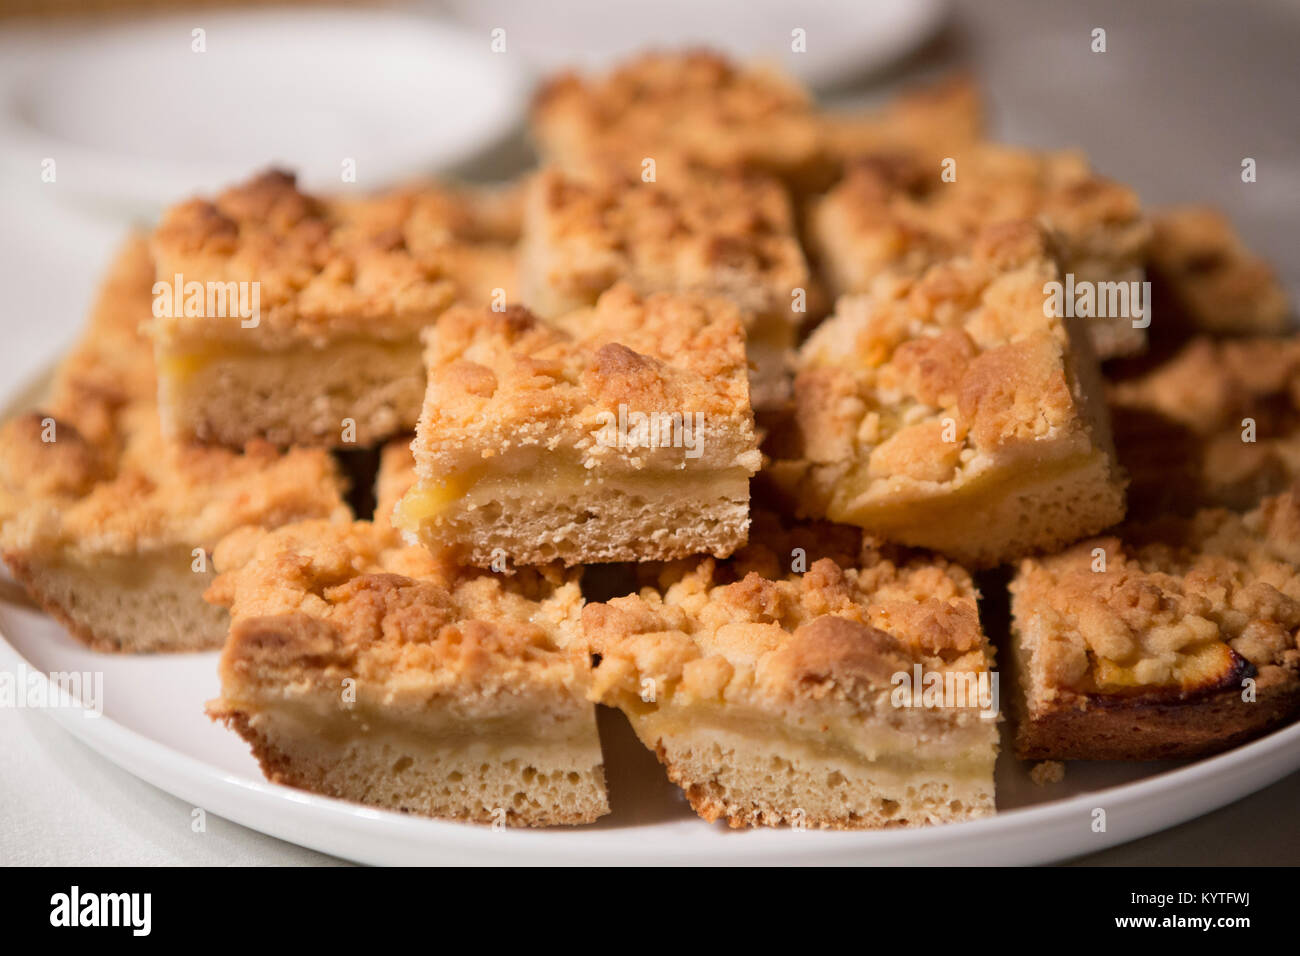 Traditional German Apple Crumble Cake 'Streuselkuchen' - Stock Image